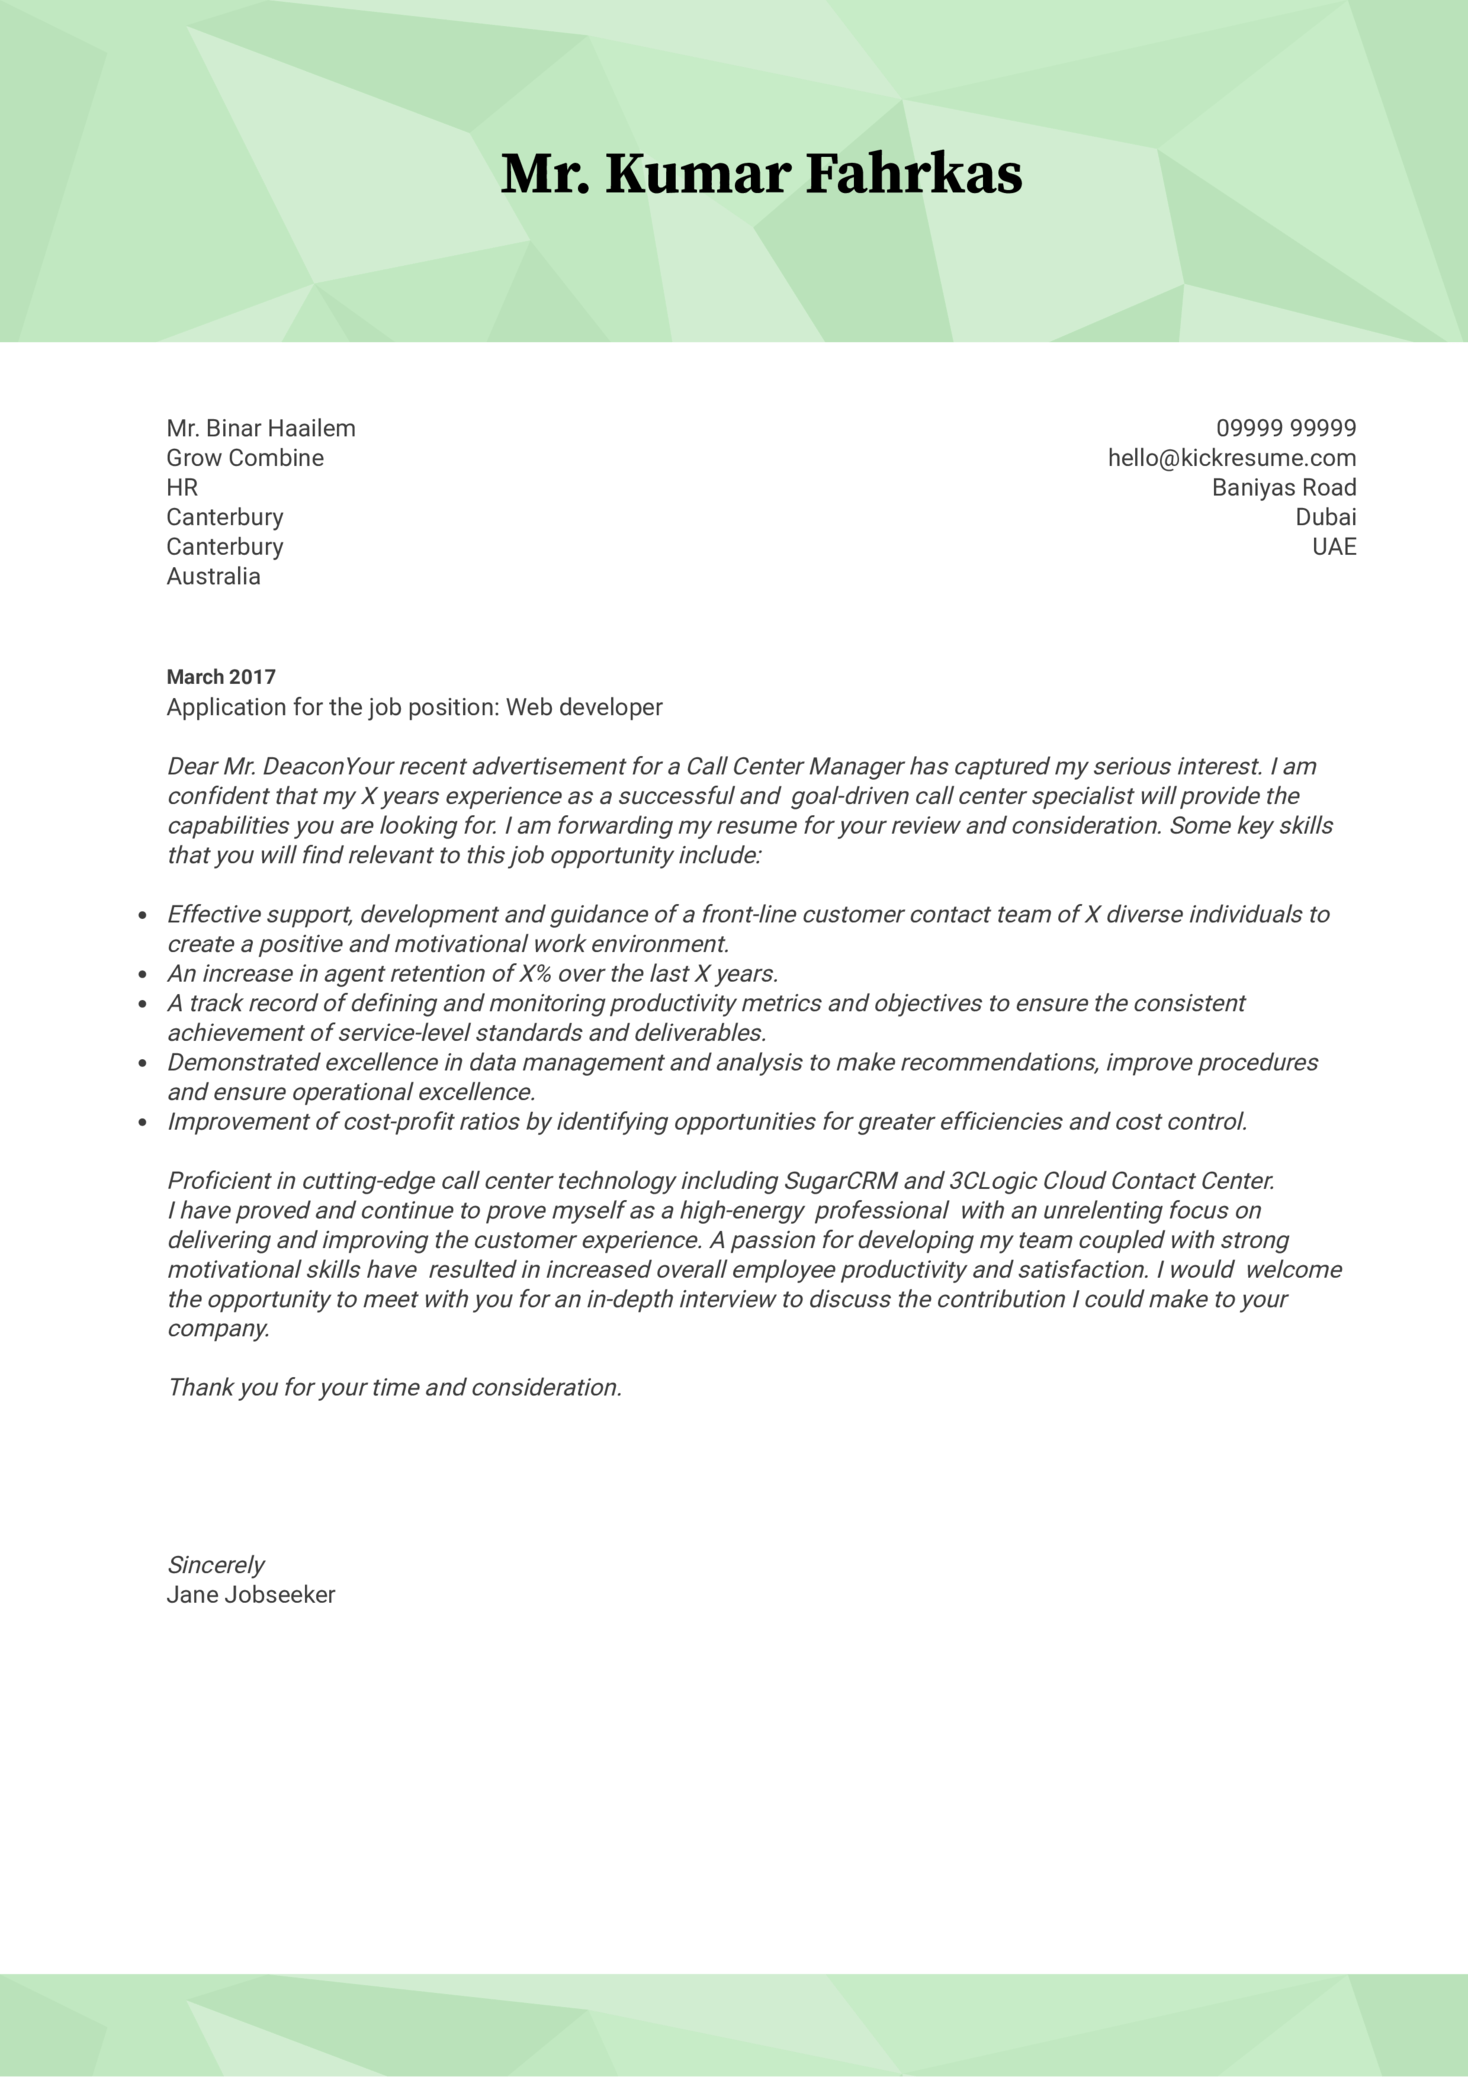 Web Developer Cover Letter Example Cover Letter Examples By Real People Souq Web Developer Cover